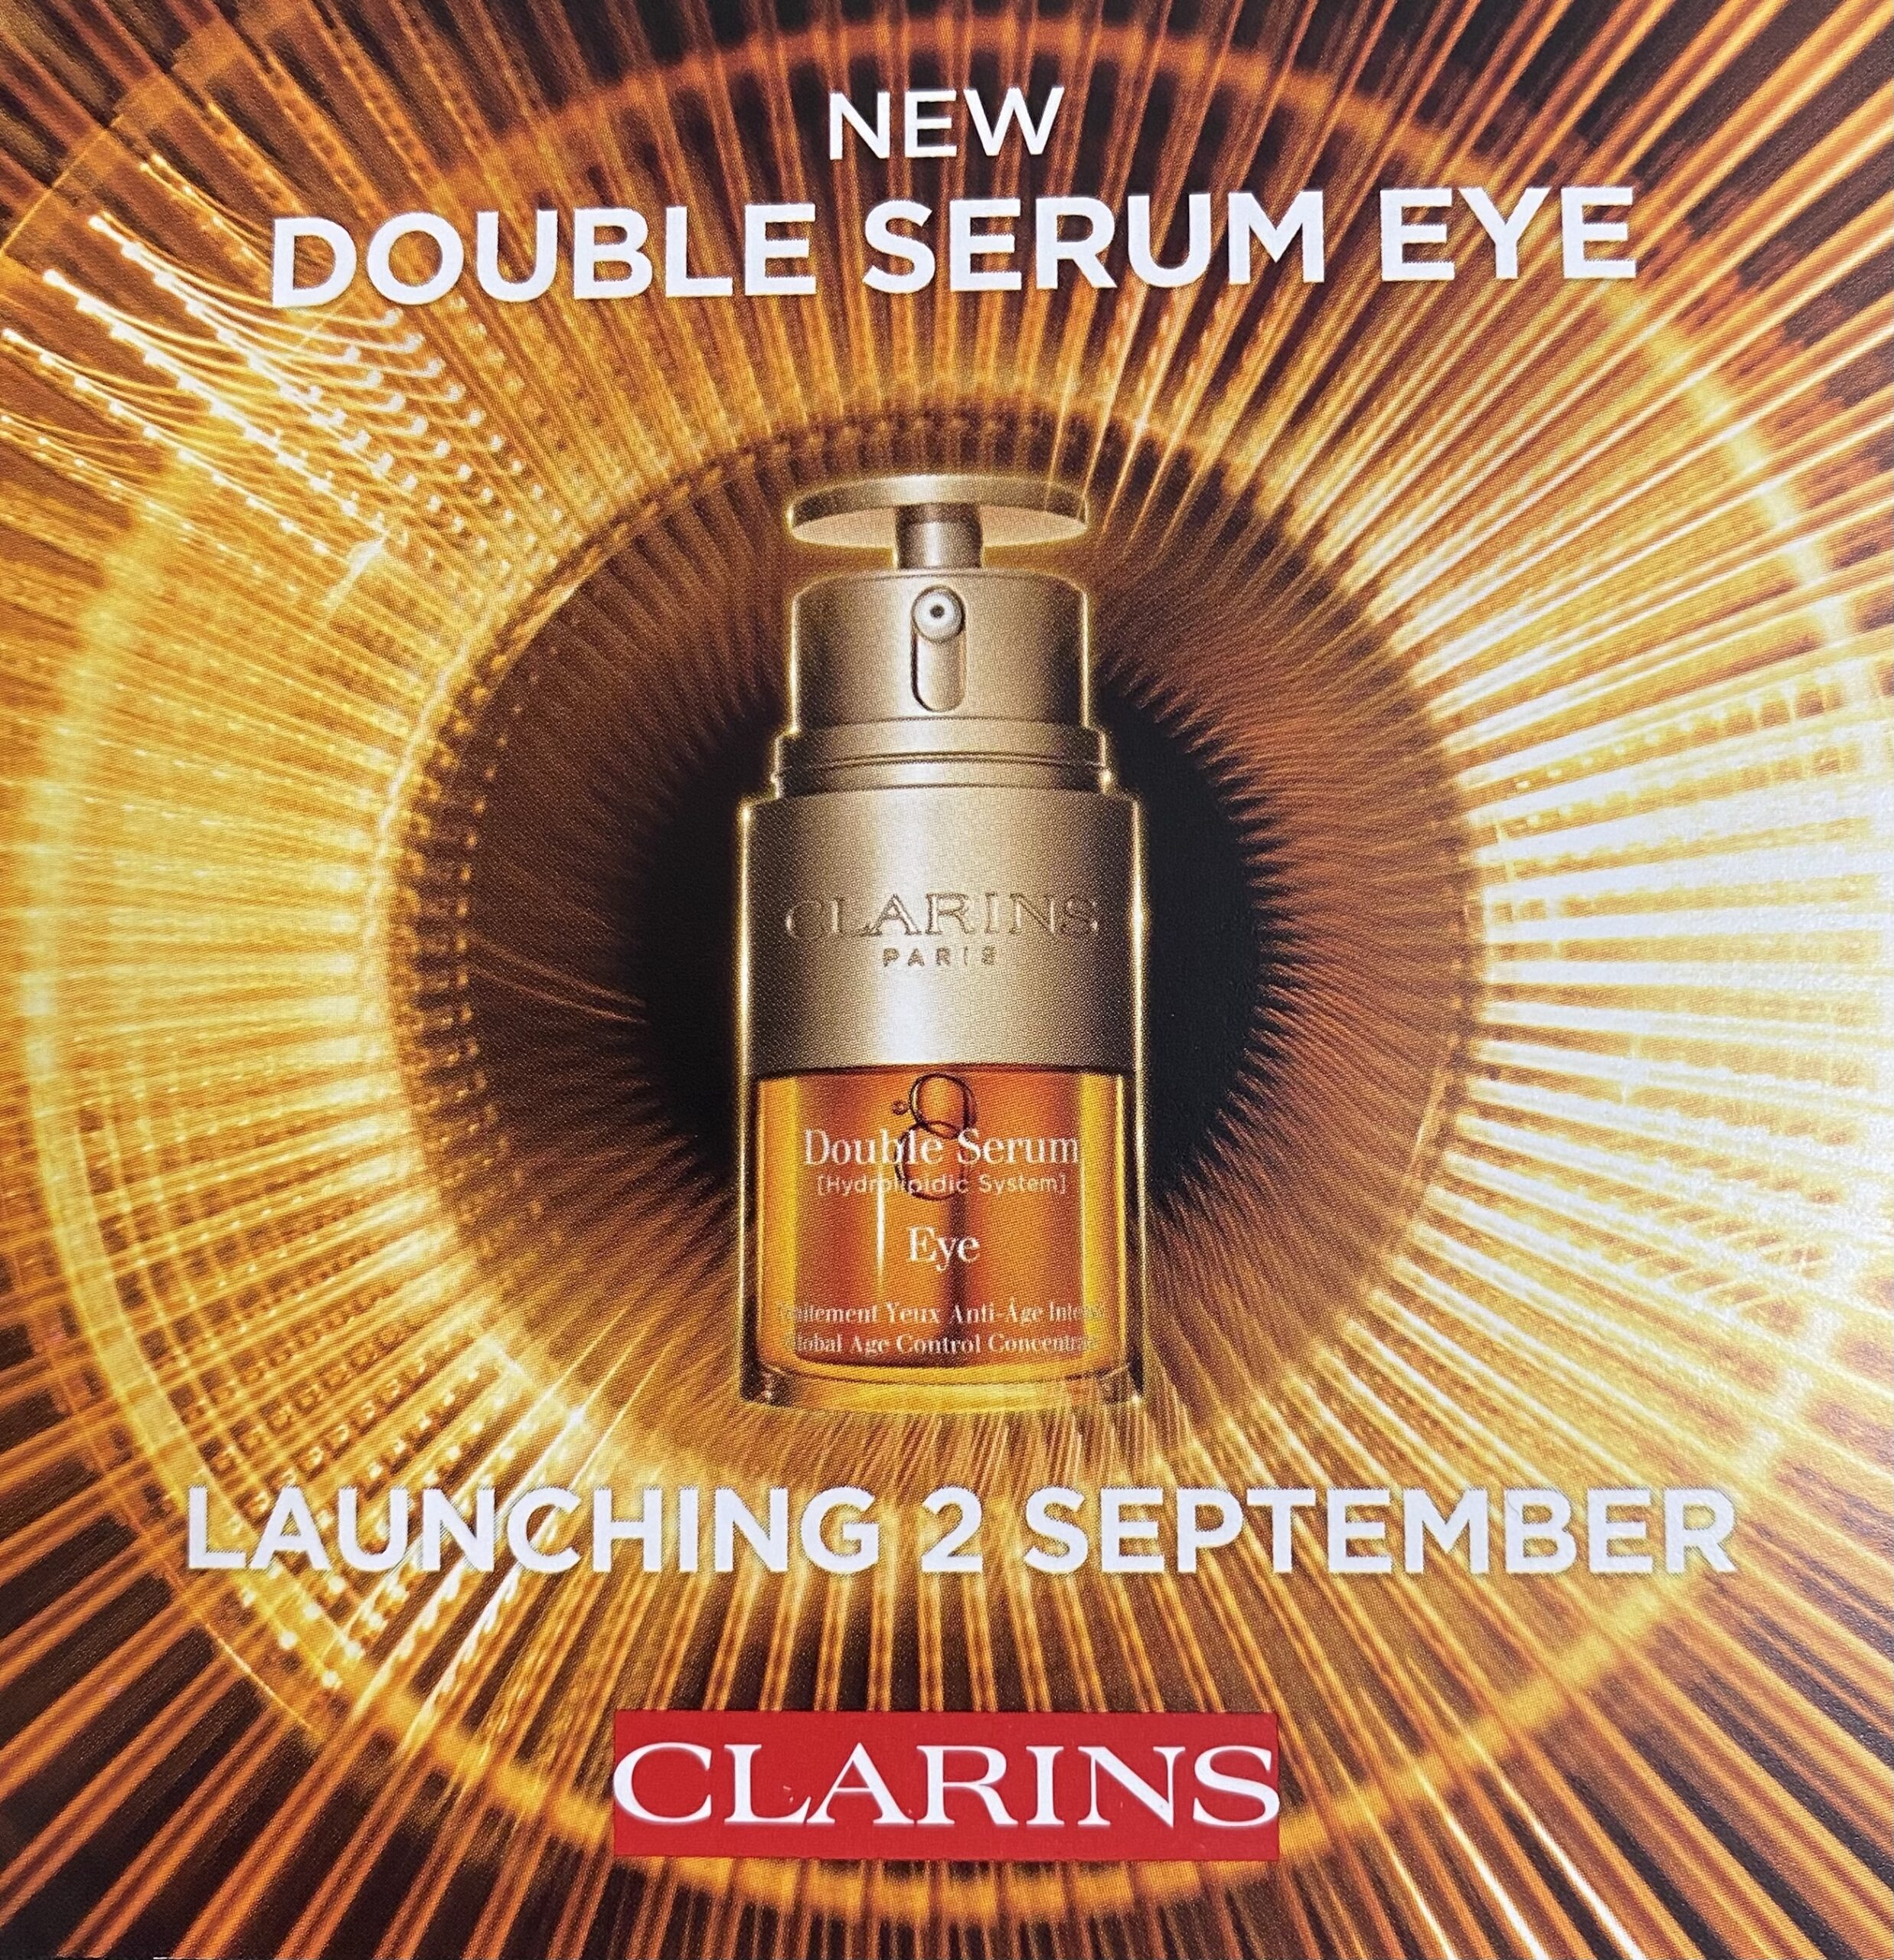 Double Serum personalised eye treatment for £29